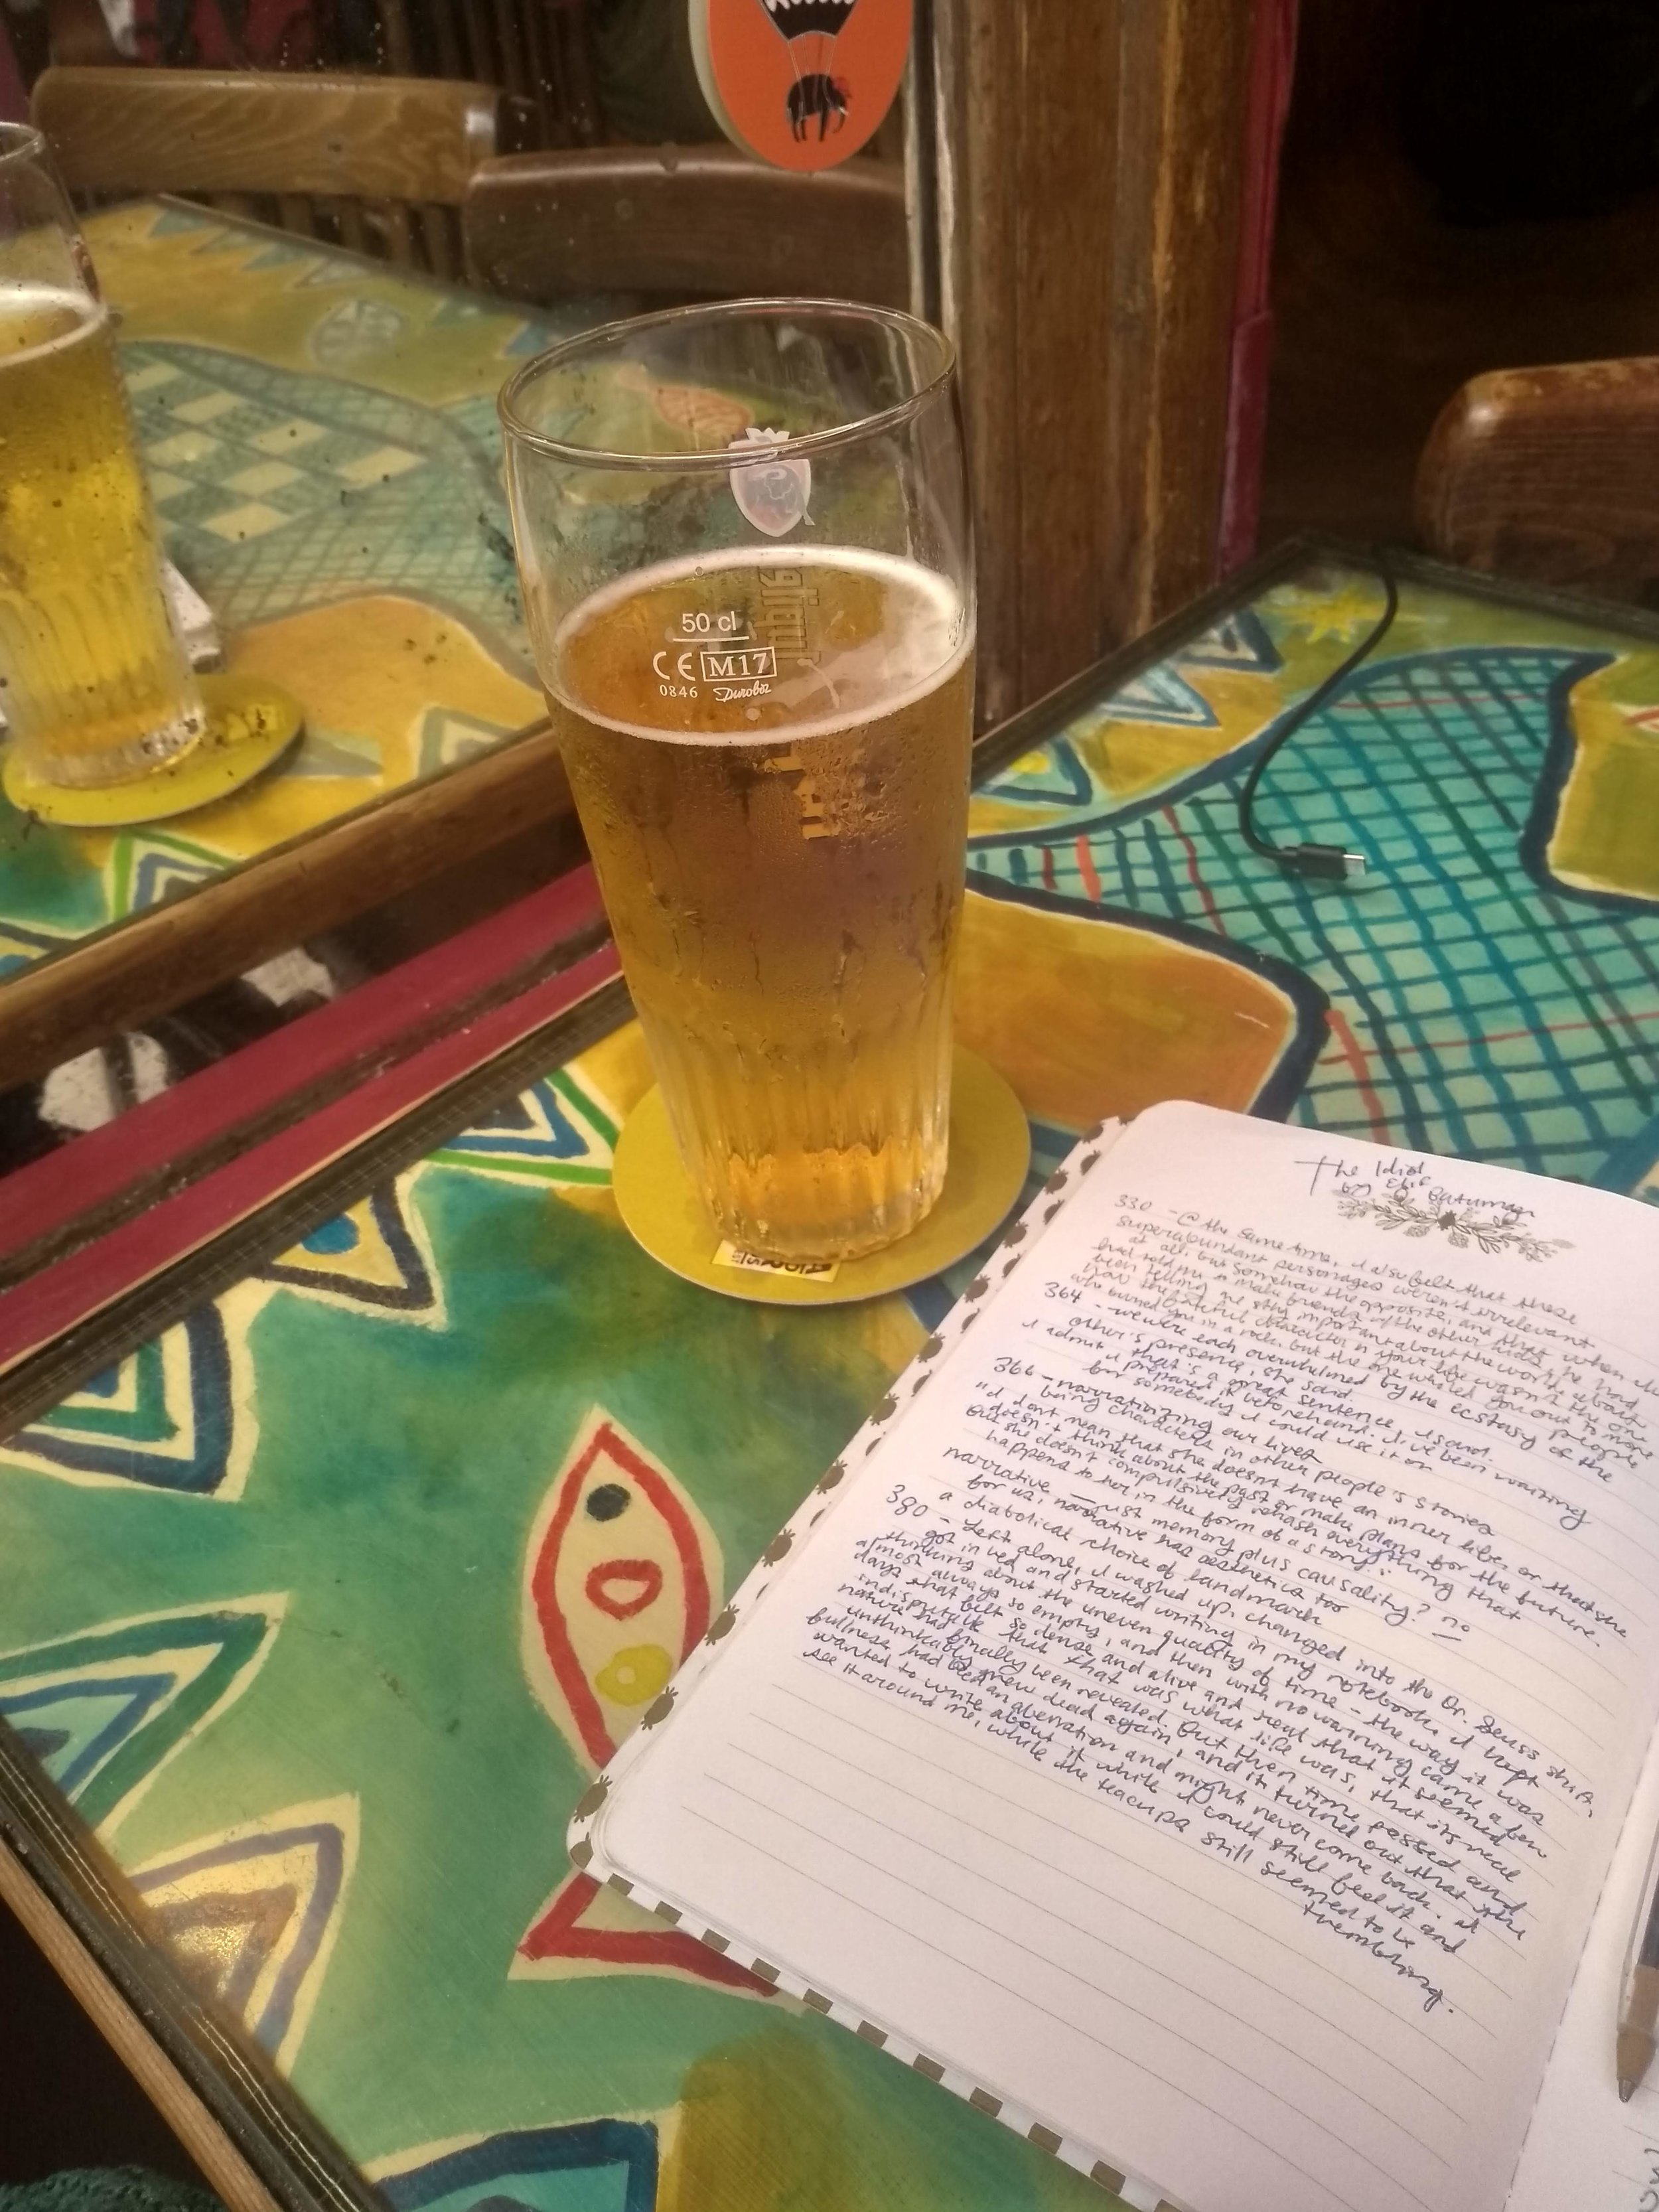 My Tripel and my notebook of quotations.